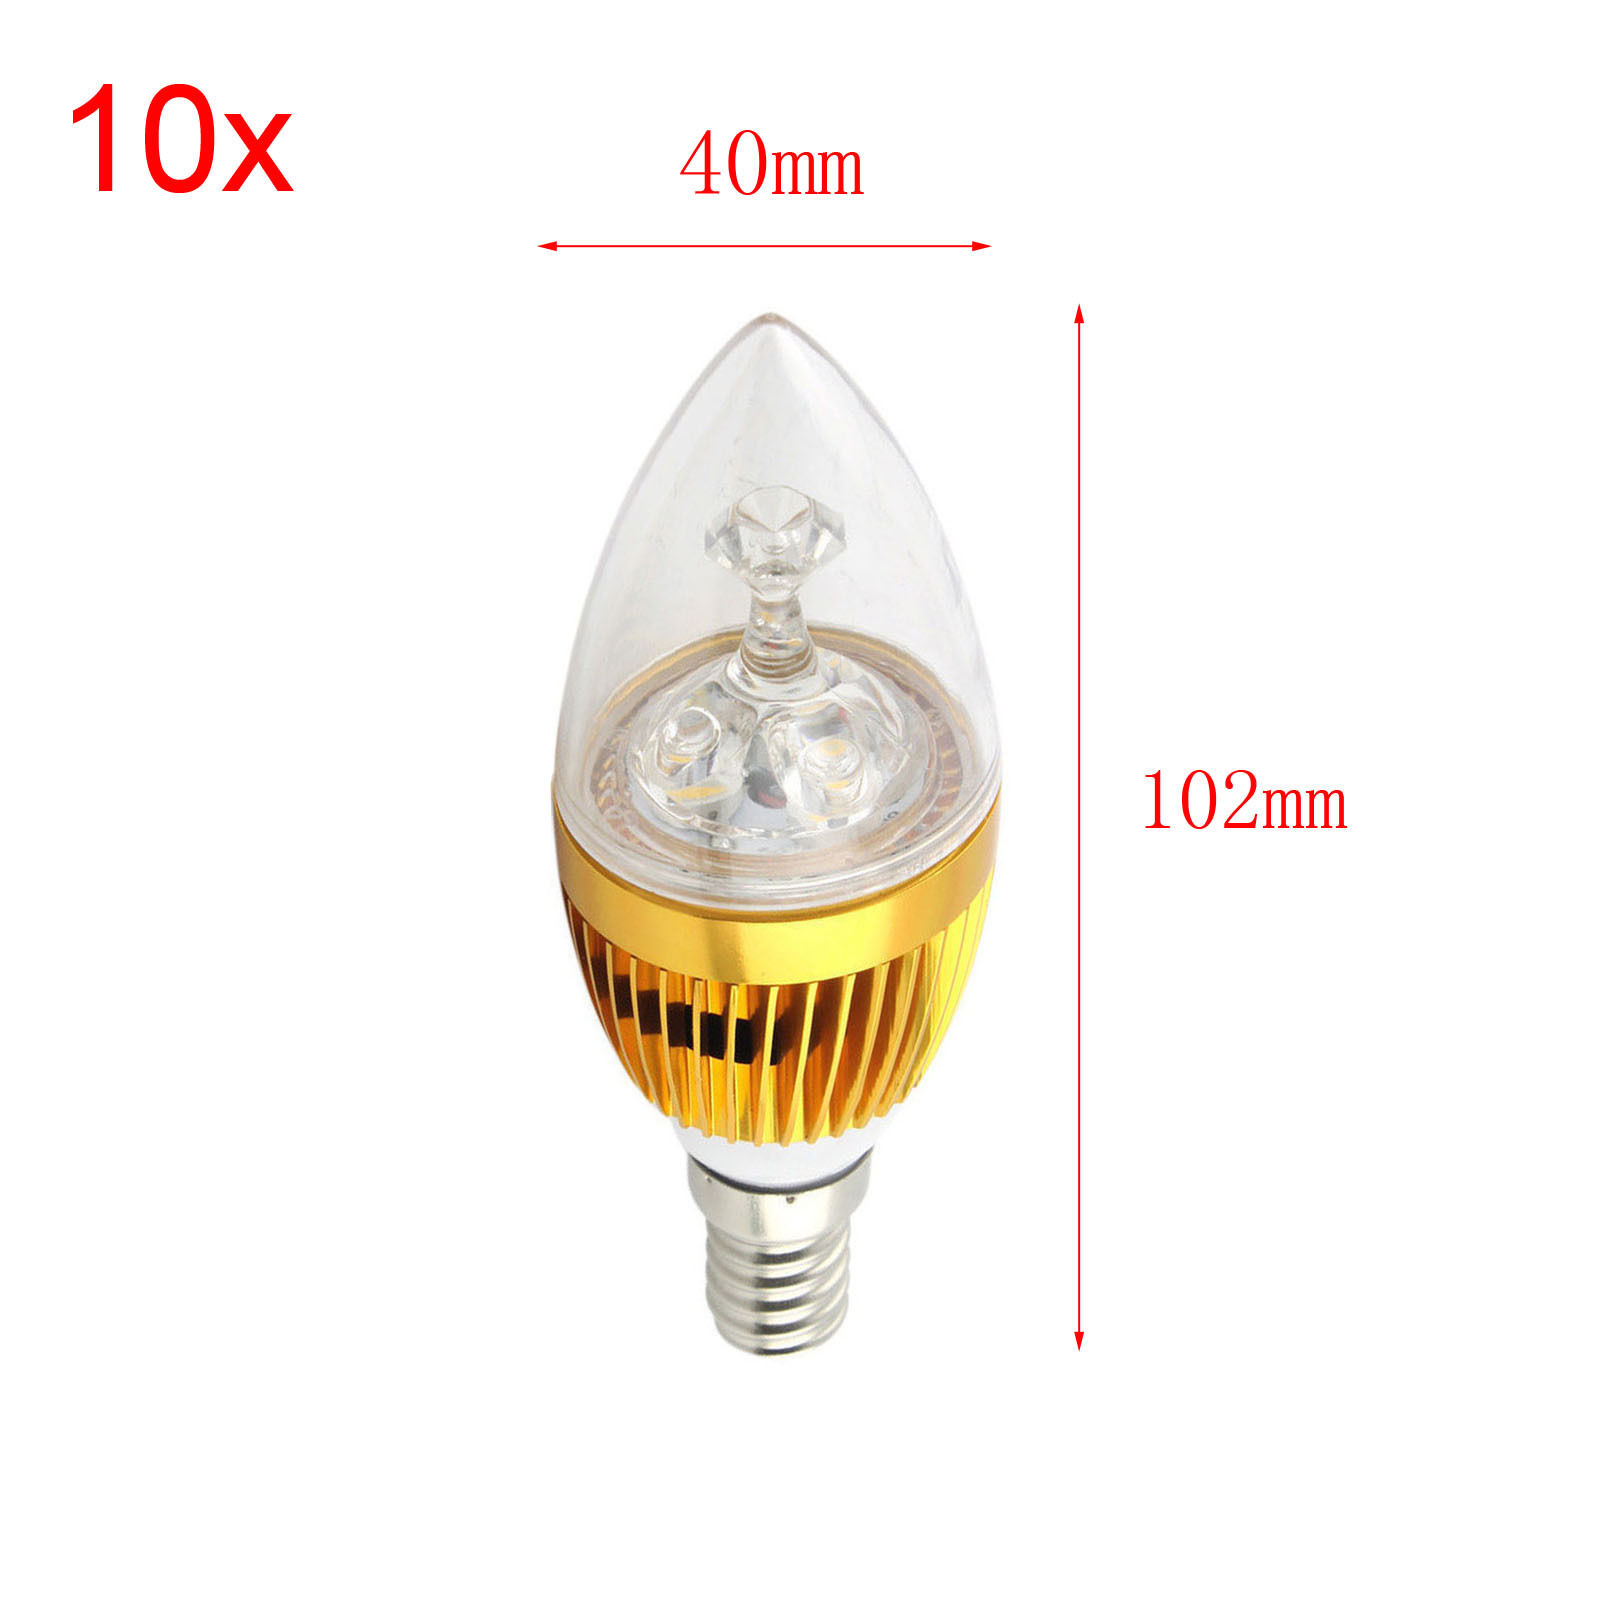 10x Dimmable E12 Candelabra LED Bulb 3W 6W 9W Chandelier Sharp Candle Light Lamp